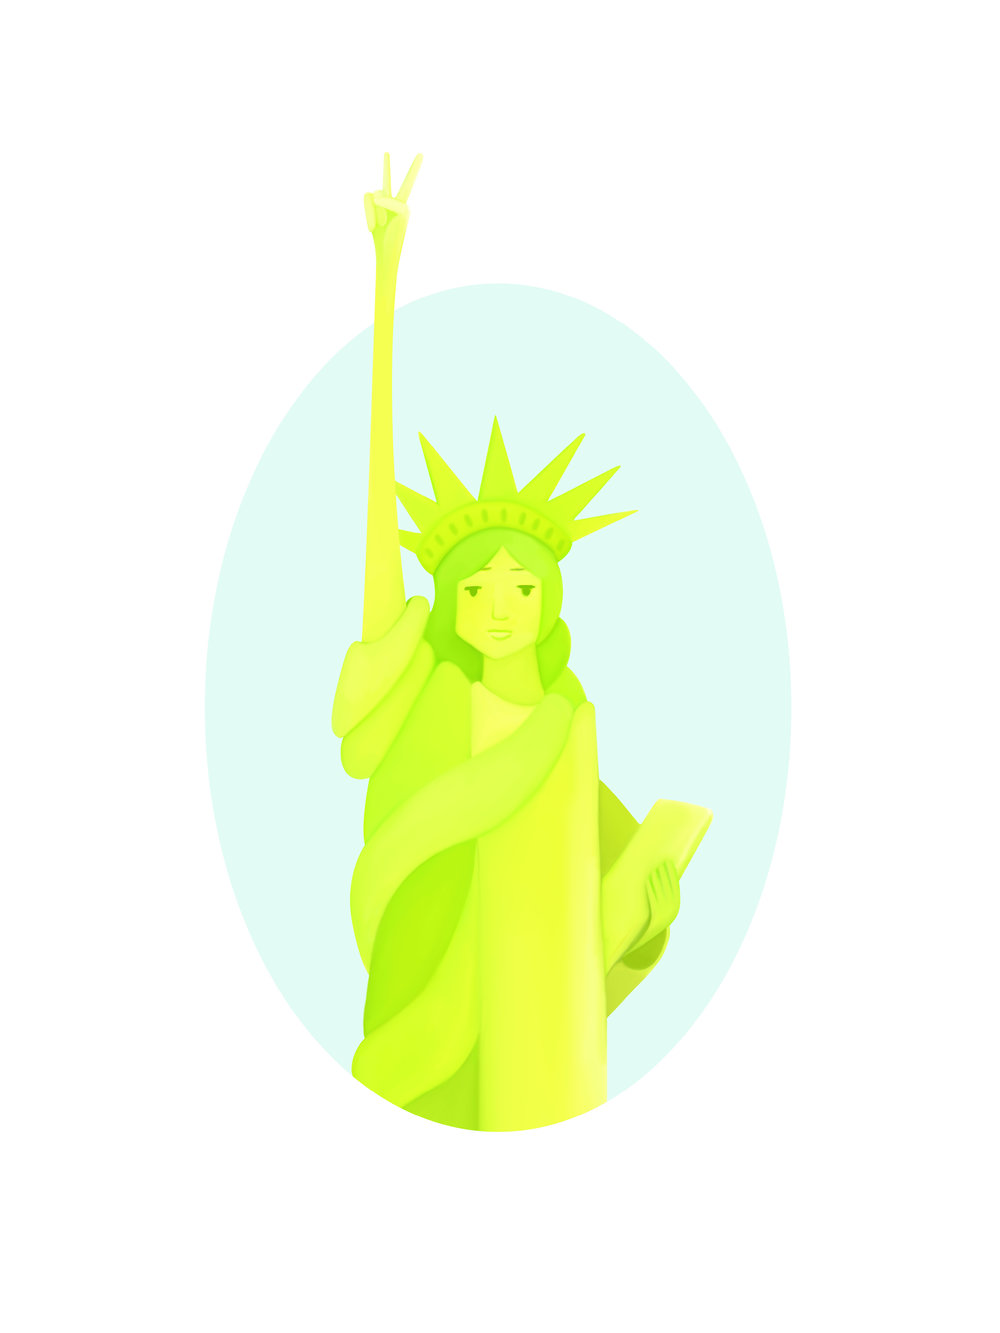 LadyLiberty_Print_12by16.jpg